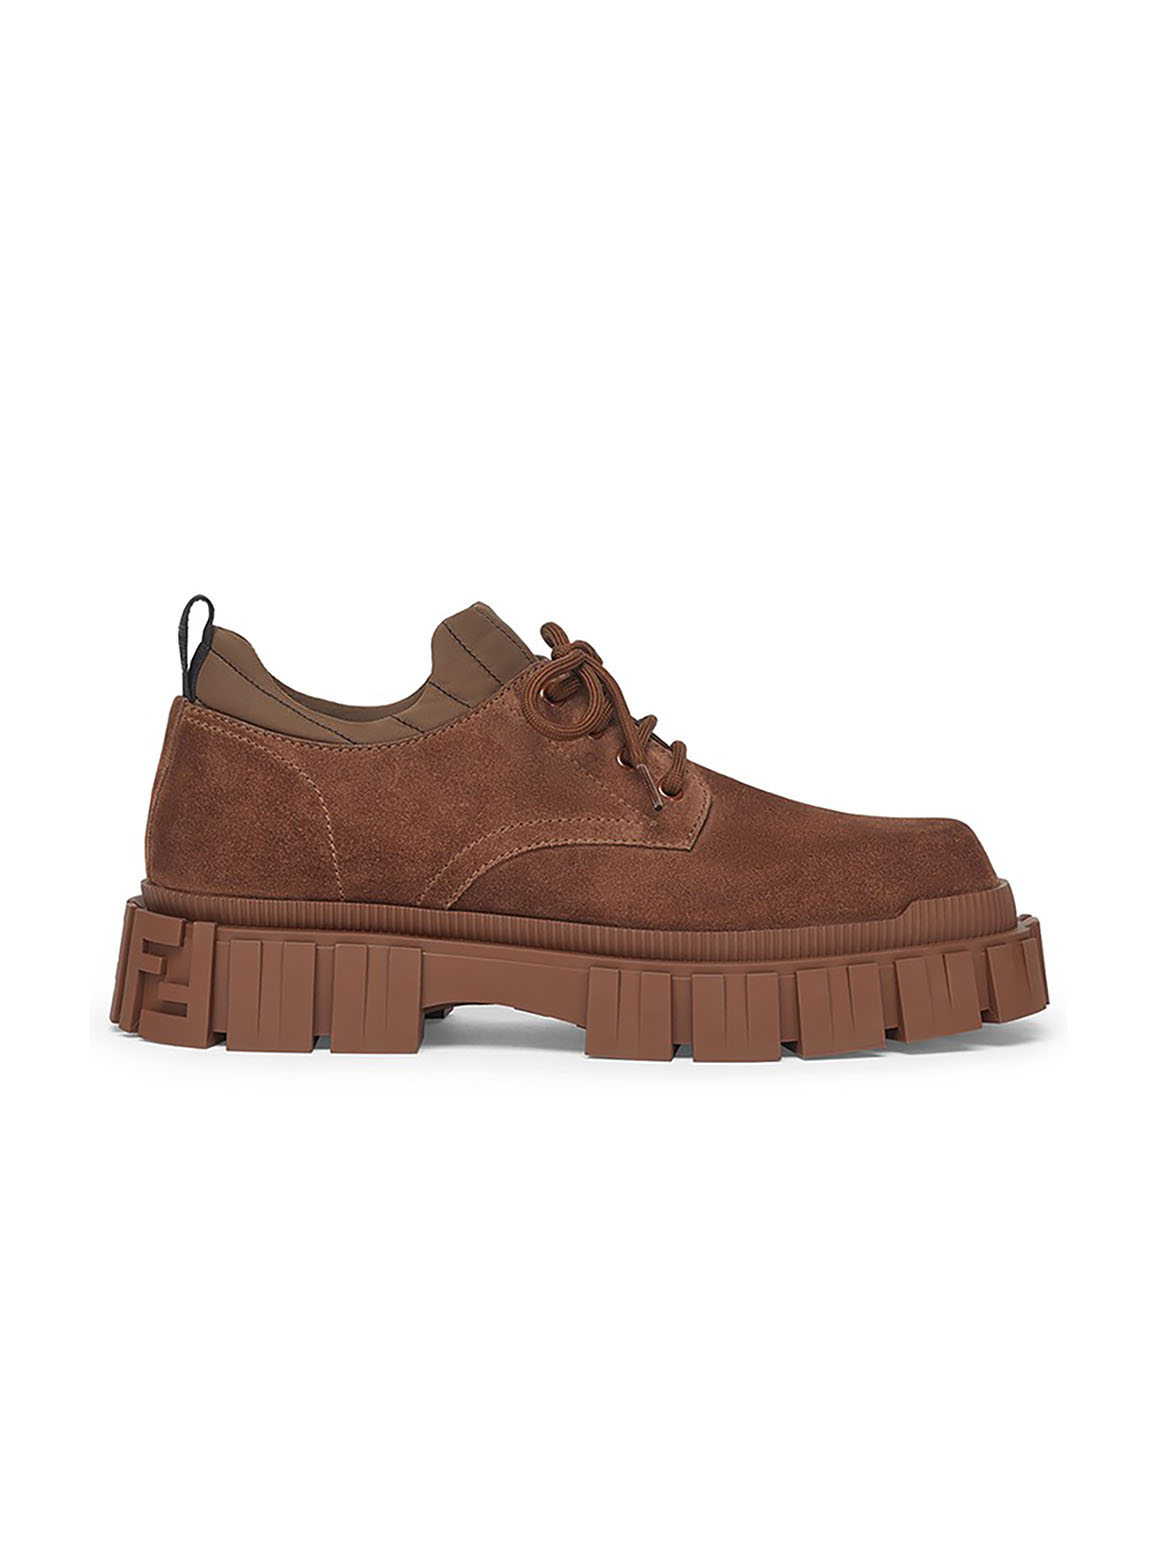 Brown suede lace-ups